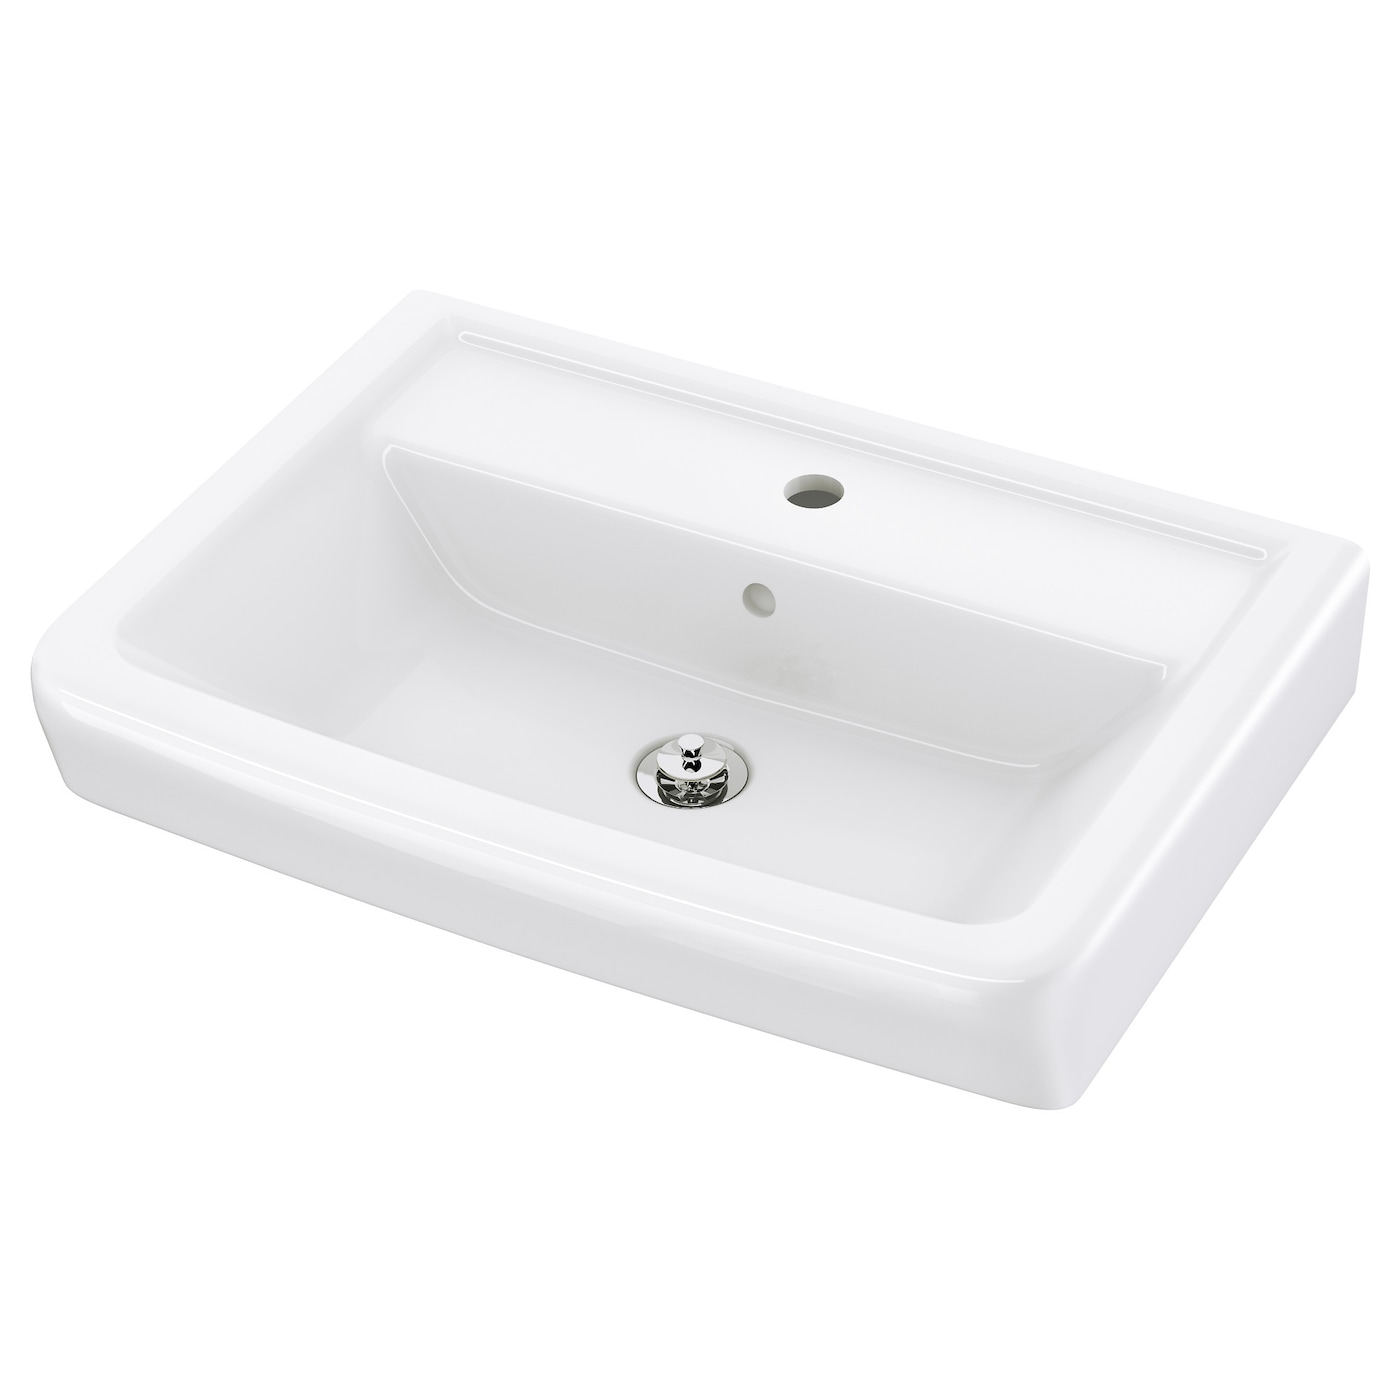 Bathroom Sinks Ireland : Bathroom Sinks & Wash Basins IKEA Ireland - Dublin